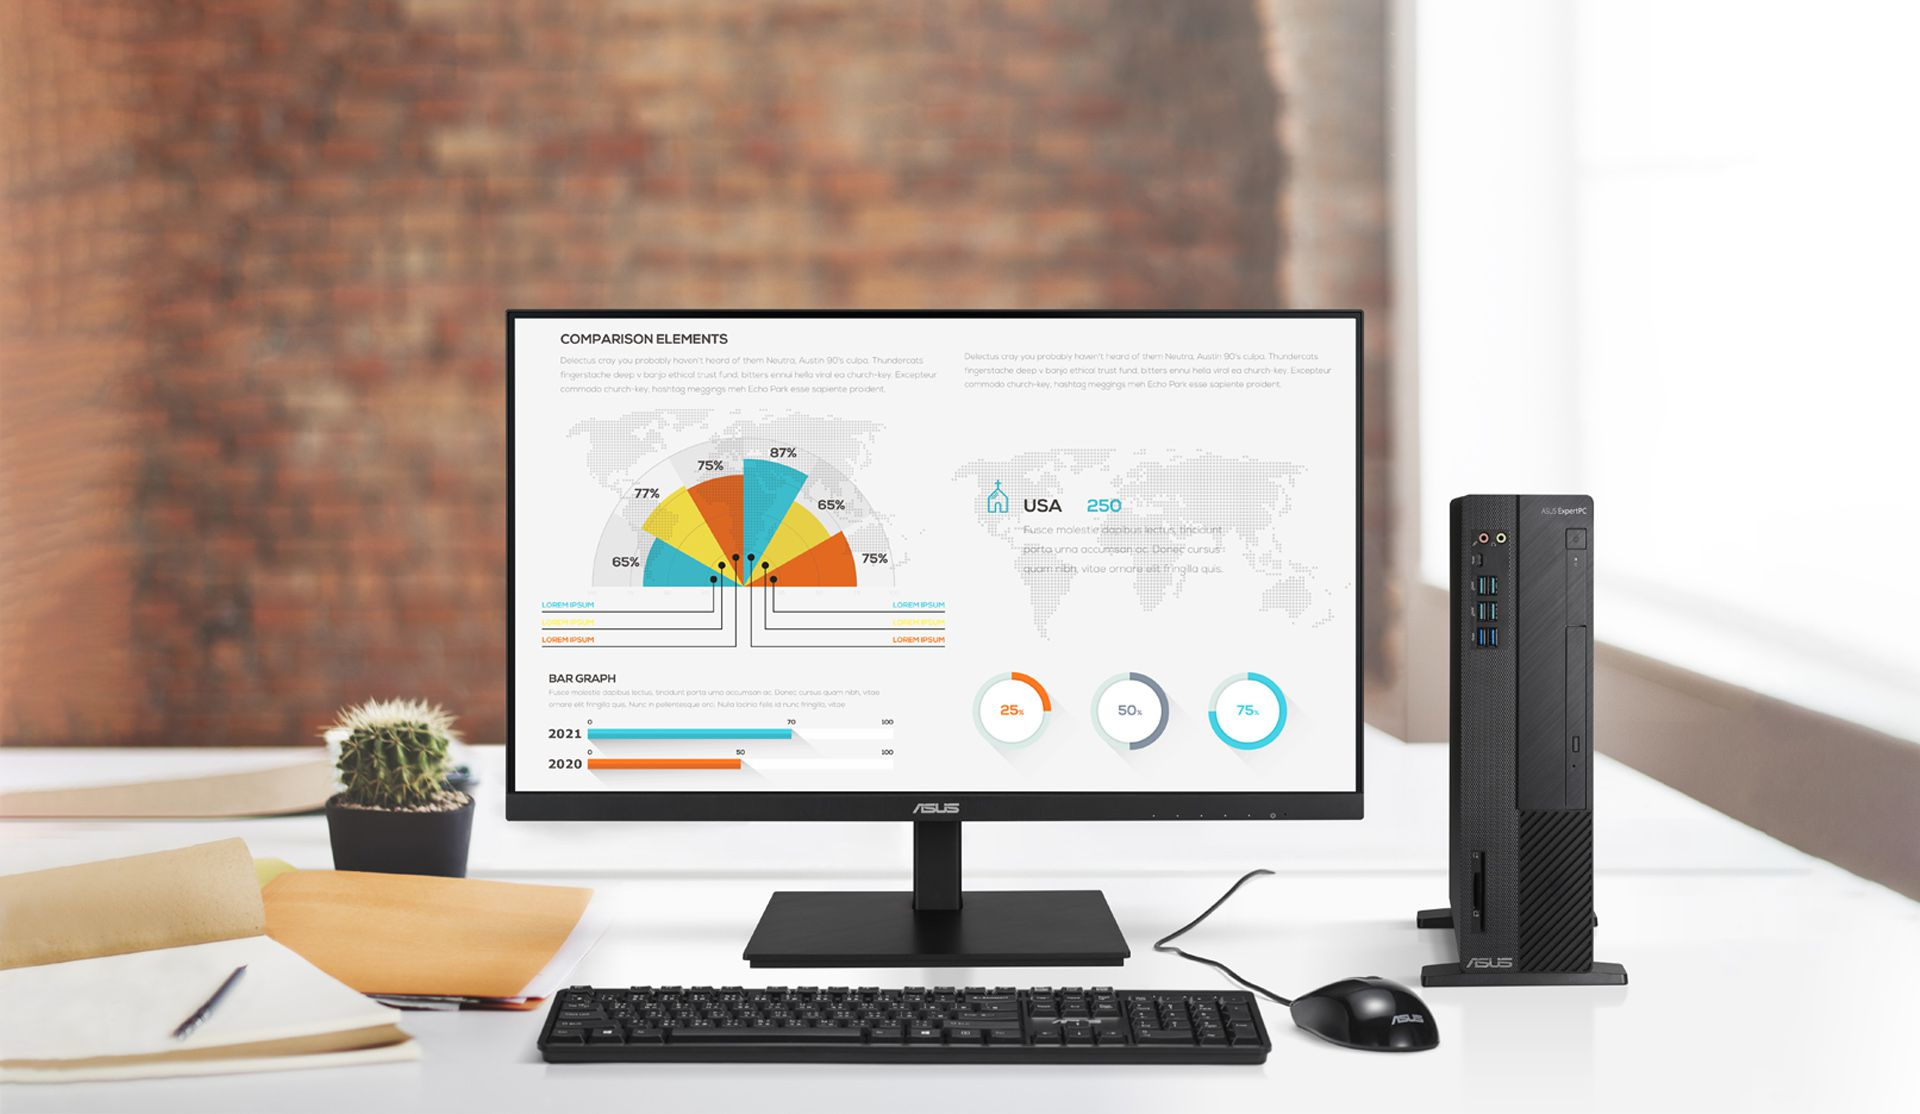 VA27DQSBY is a 23.8-inch Full HD monitor that features an integrated Full HD (2MP) webcam, microphone array and stereo speakers for video conferencing and live-streaming.